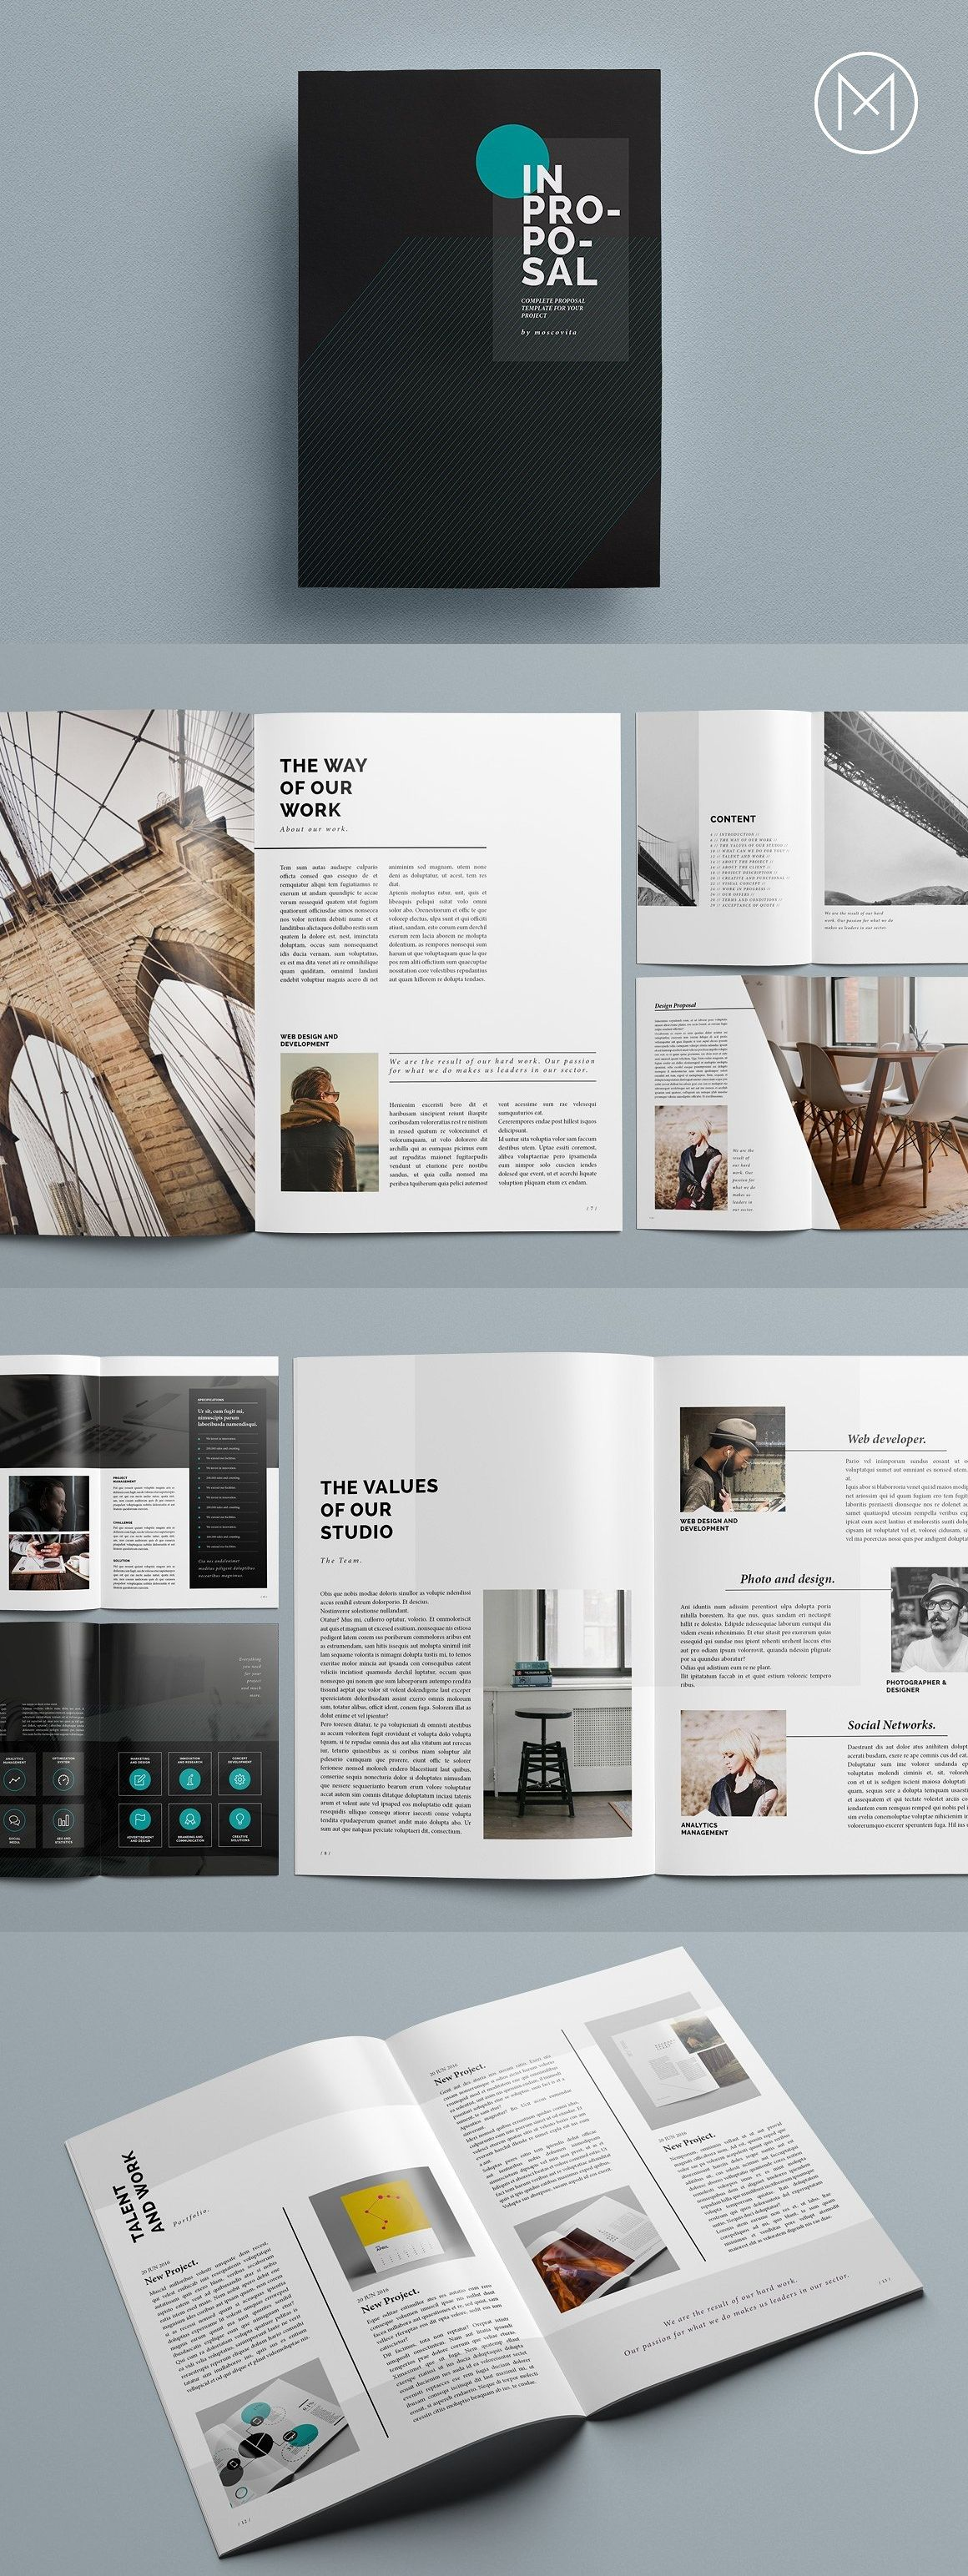 design indesign ビジネス パンフ pinterest layout design